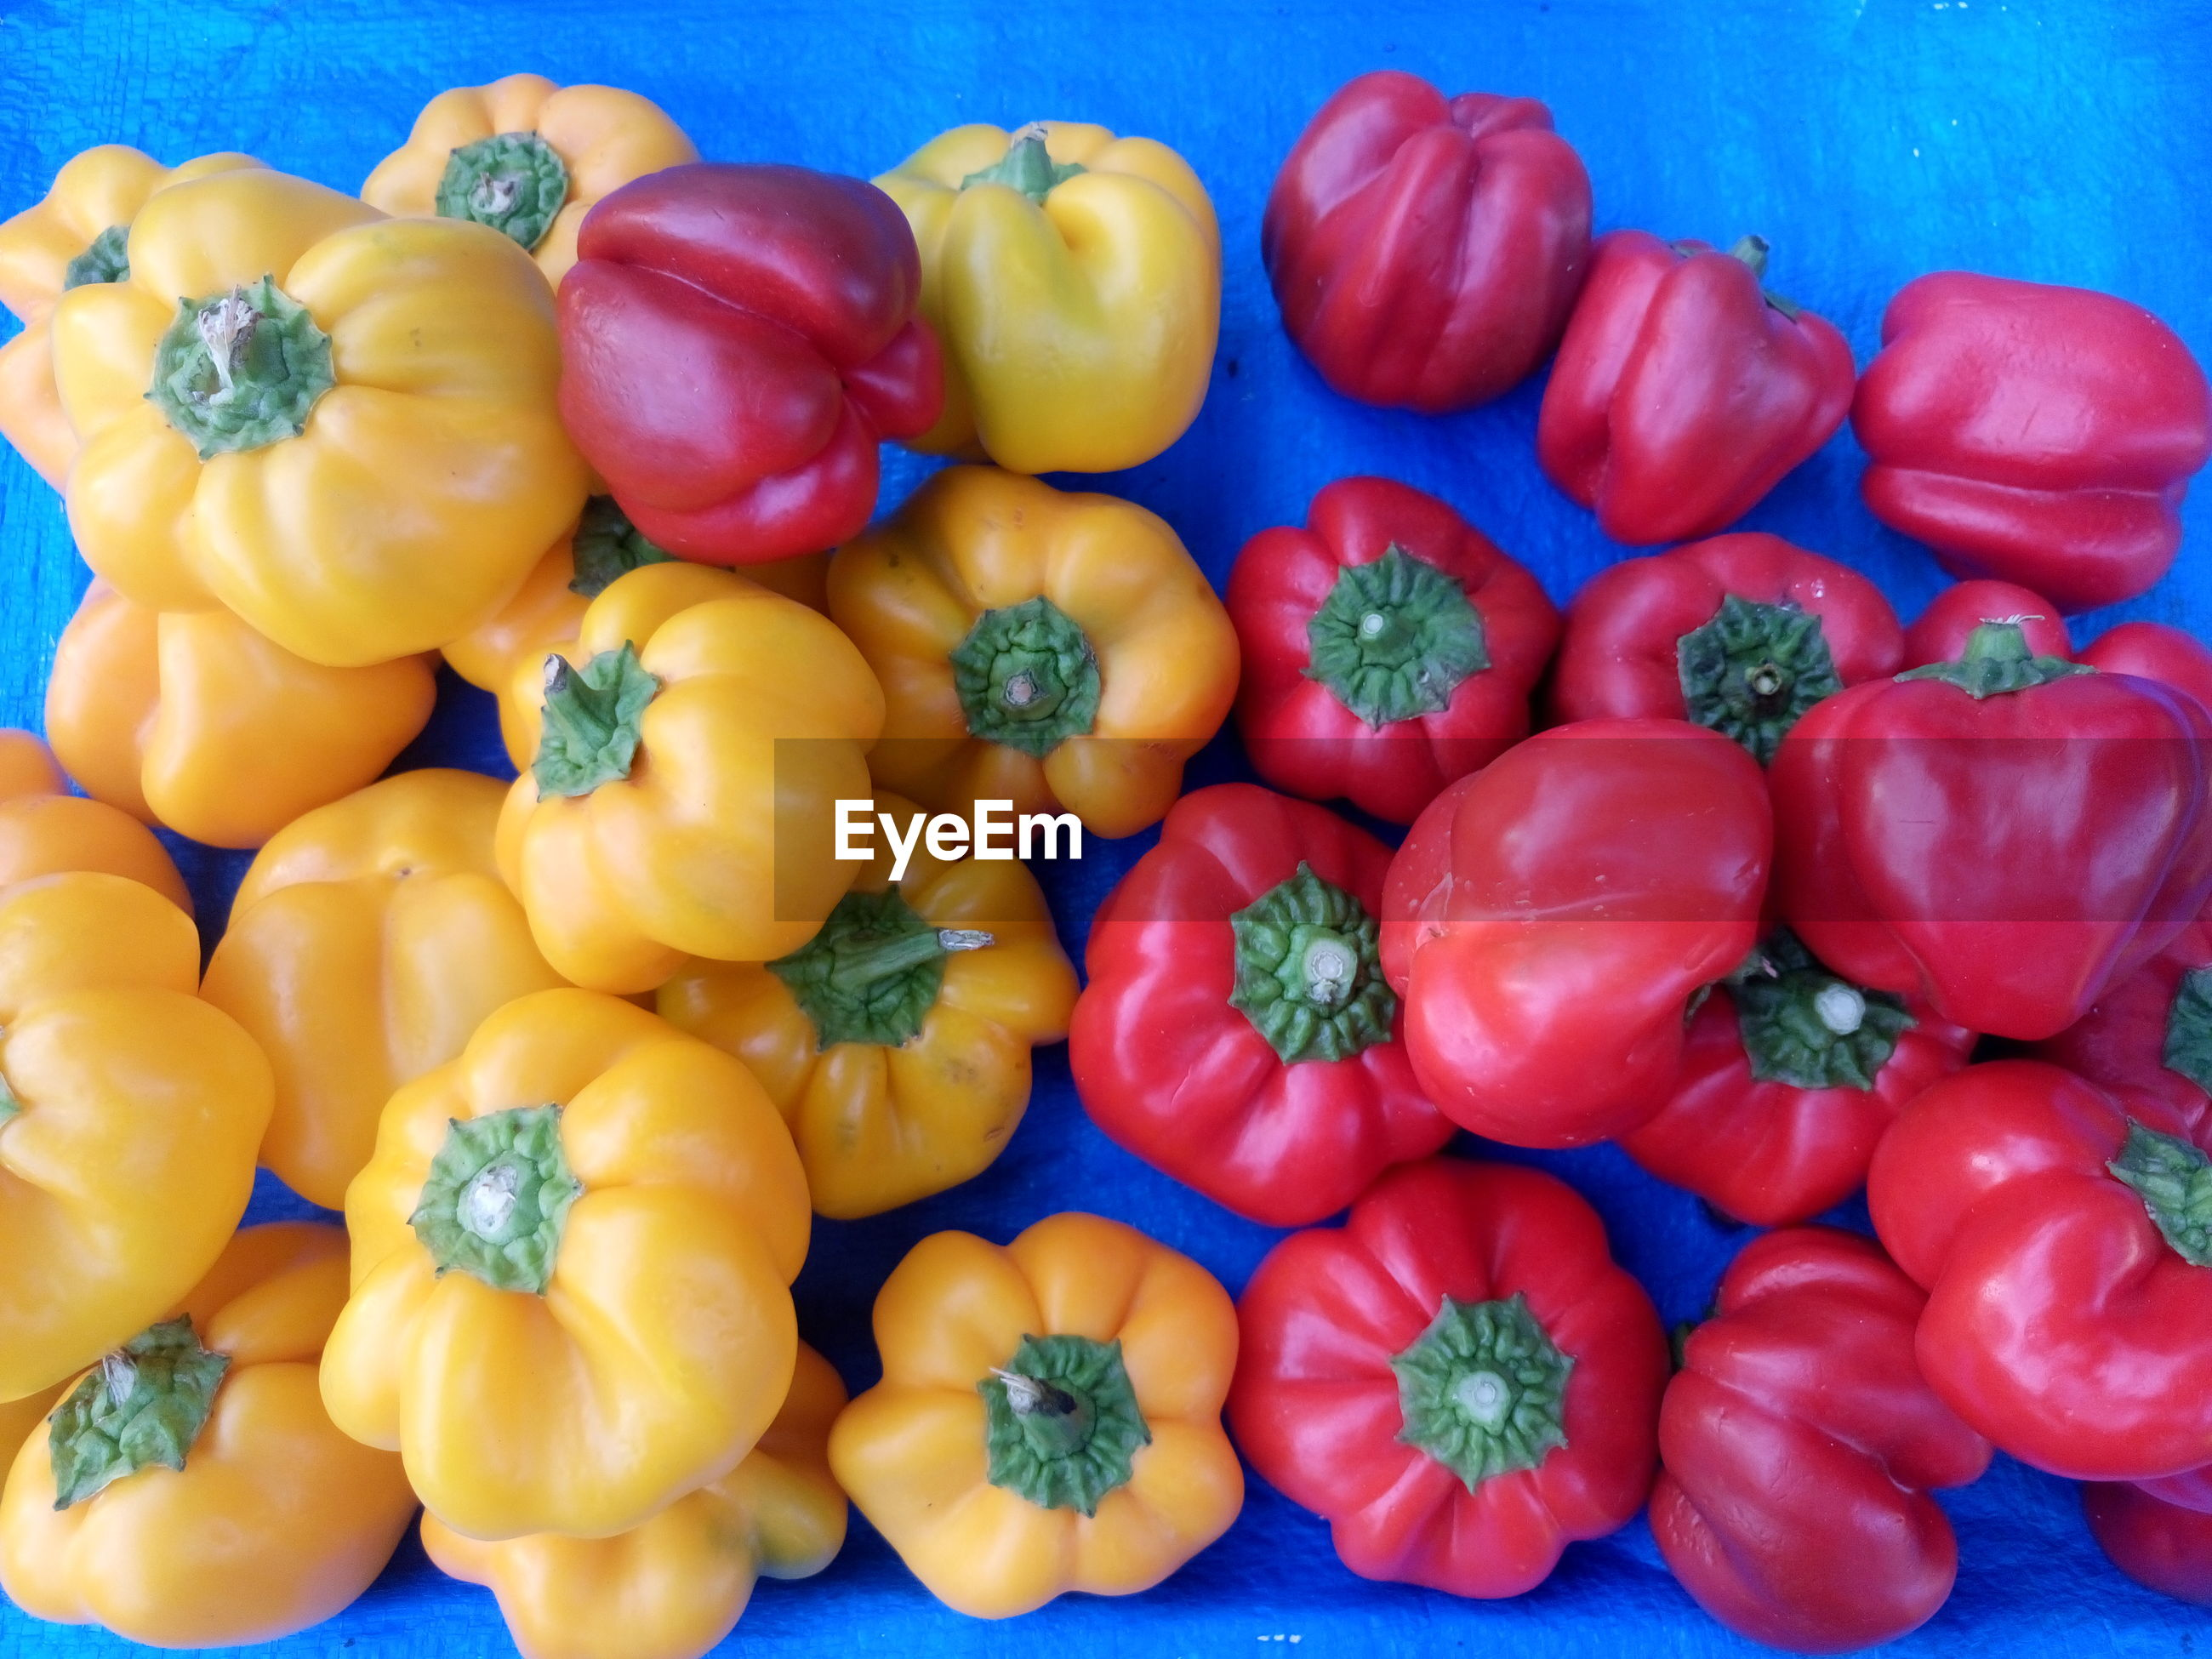 vegetable, food and drink, food, healthy eating, variation, red bell pepper, still life, freshness, retail, high angle view, bell pepper, no people, large group of objects, for sale, yellow bell pepper, raw food, red, abundance, market, yellow, stack, choice, multi colored, day, close-up, indoors